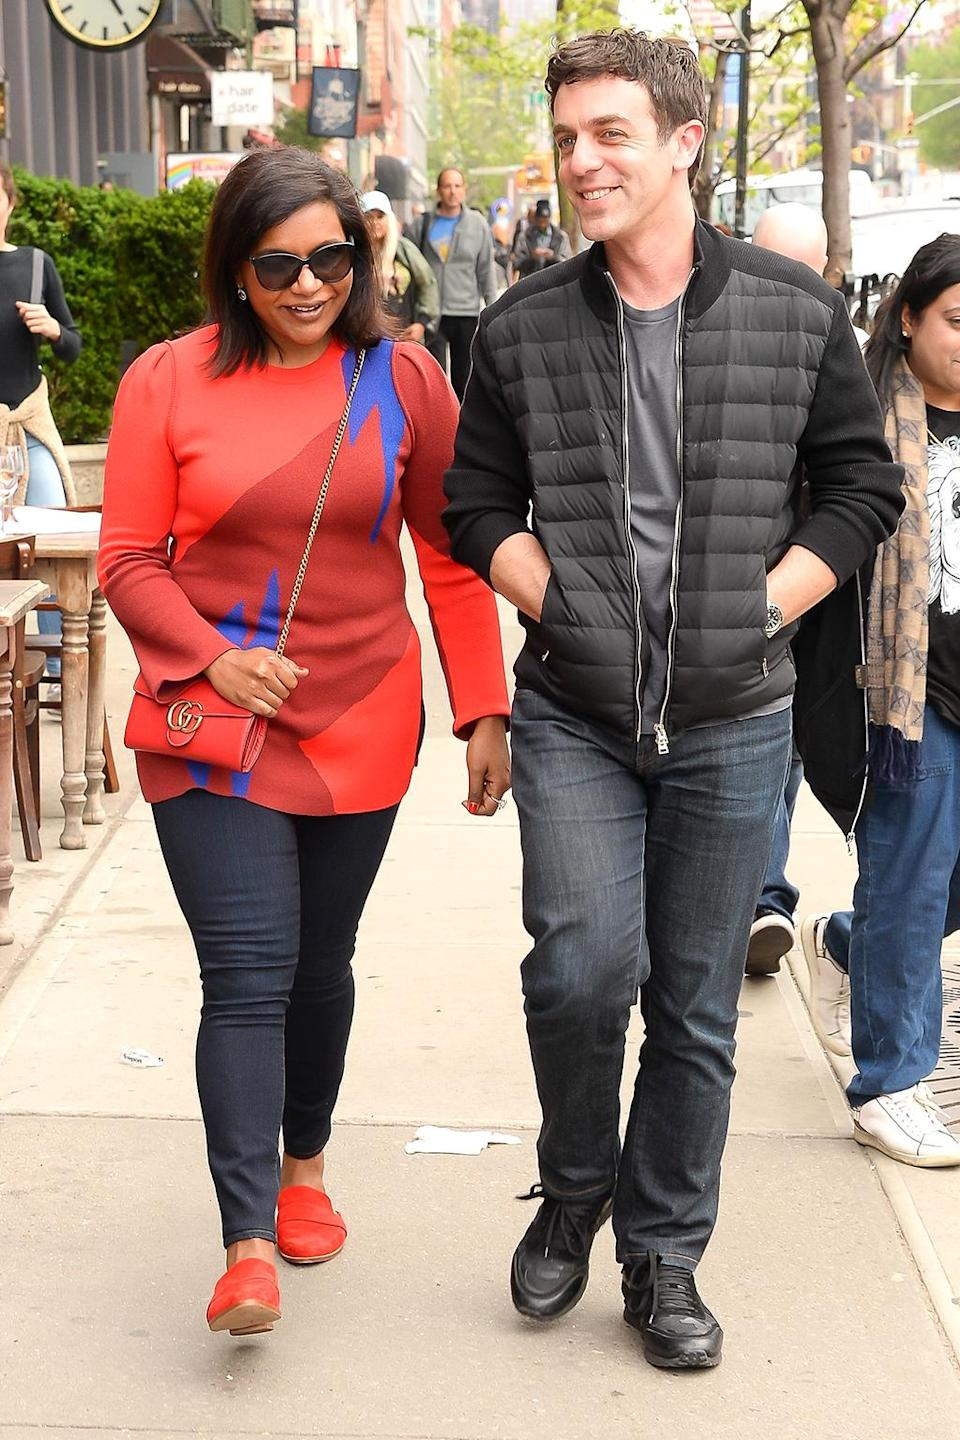 """<p>The friendly exes and former co-stars of <i>The Office</i> met for lunch in the Big Apple. Kaling had better get her lunches with friends in while she can, since she just added <a rel=""""nofollow noopener"""" href=""""http://deadline.com/2017/04/mindy-kaling-3-arts-alyssa-mastromonaco-white-house-memoir-who-thought-this-was-a-good-idea-tv-series-1202078049/"""" target=""""_blank"""" data-ylk=""""slk:a TV series based on a former staffer in the Obama White House"""" class=""""link rapid-noclick-resp"""">a TV series based on a former staffer in the Obama White House</a> to her long list of projects in the works. (Photo: PapGossip.com/AKM-GSI) </p>"""